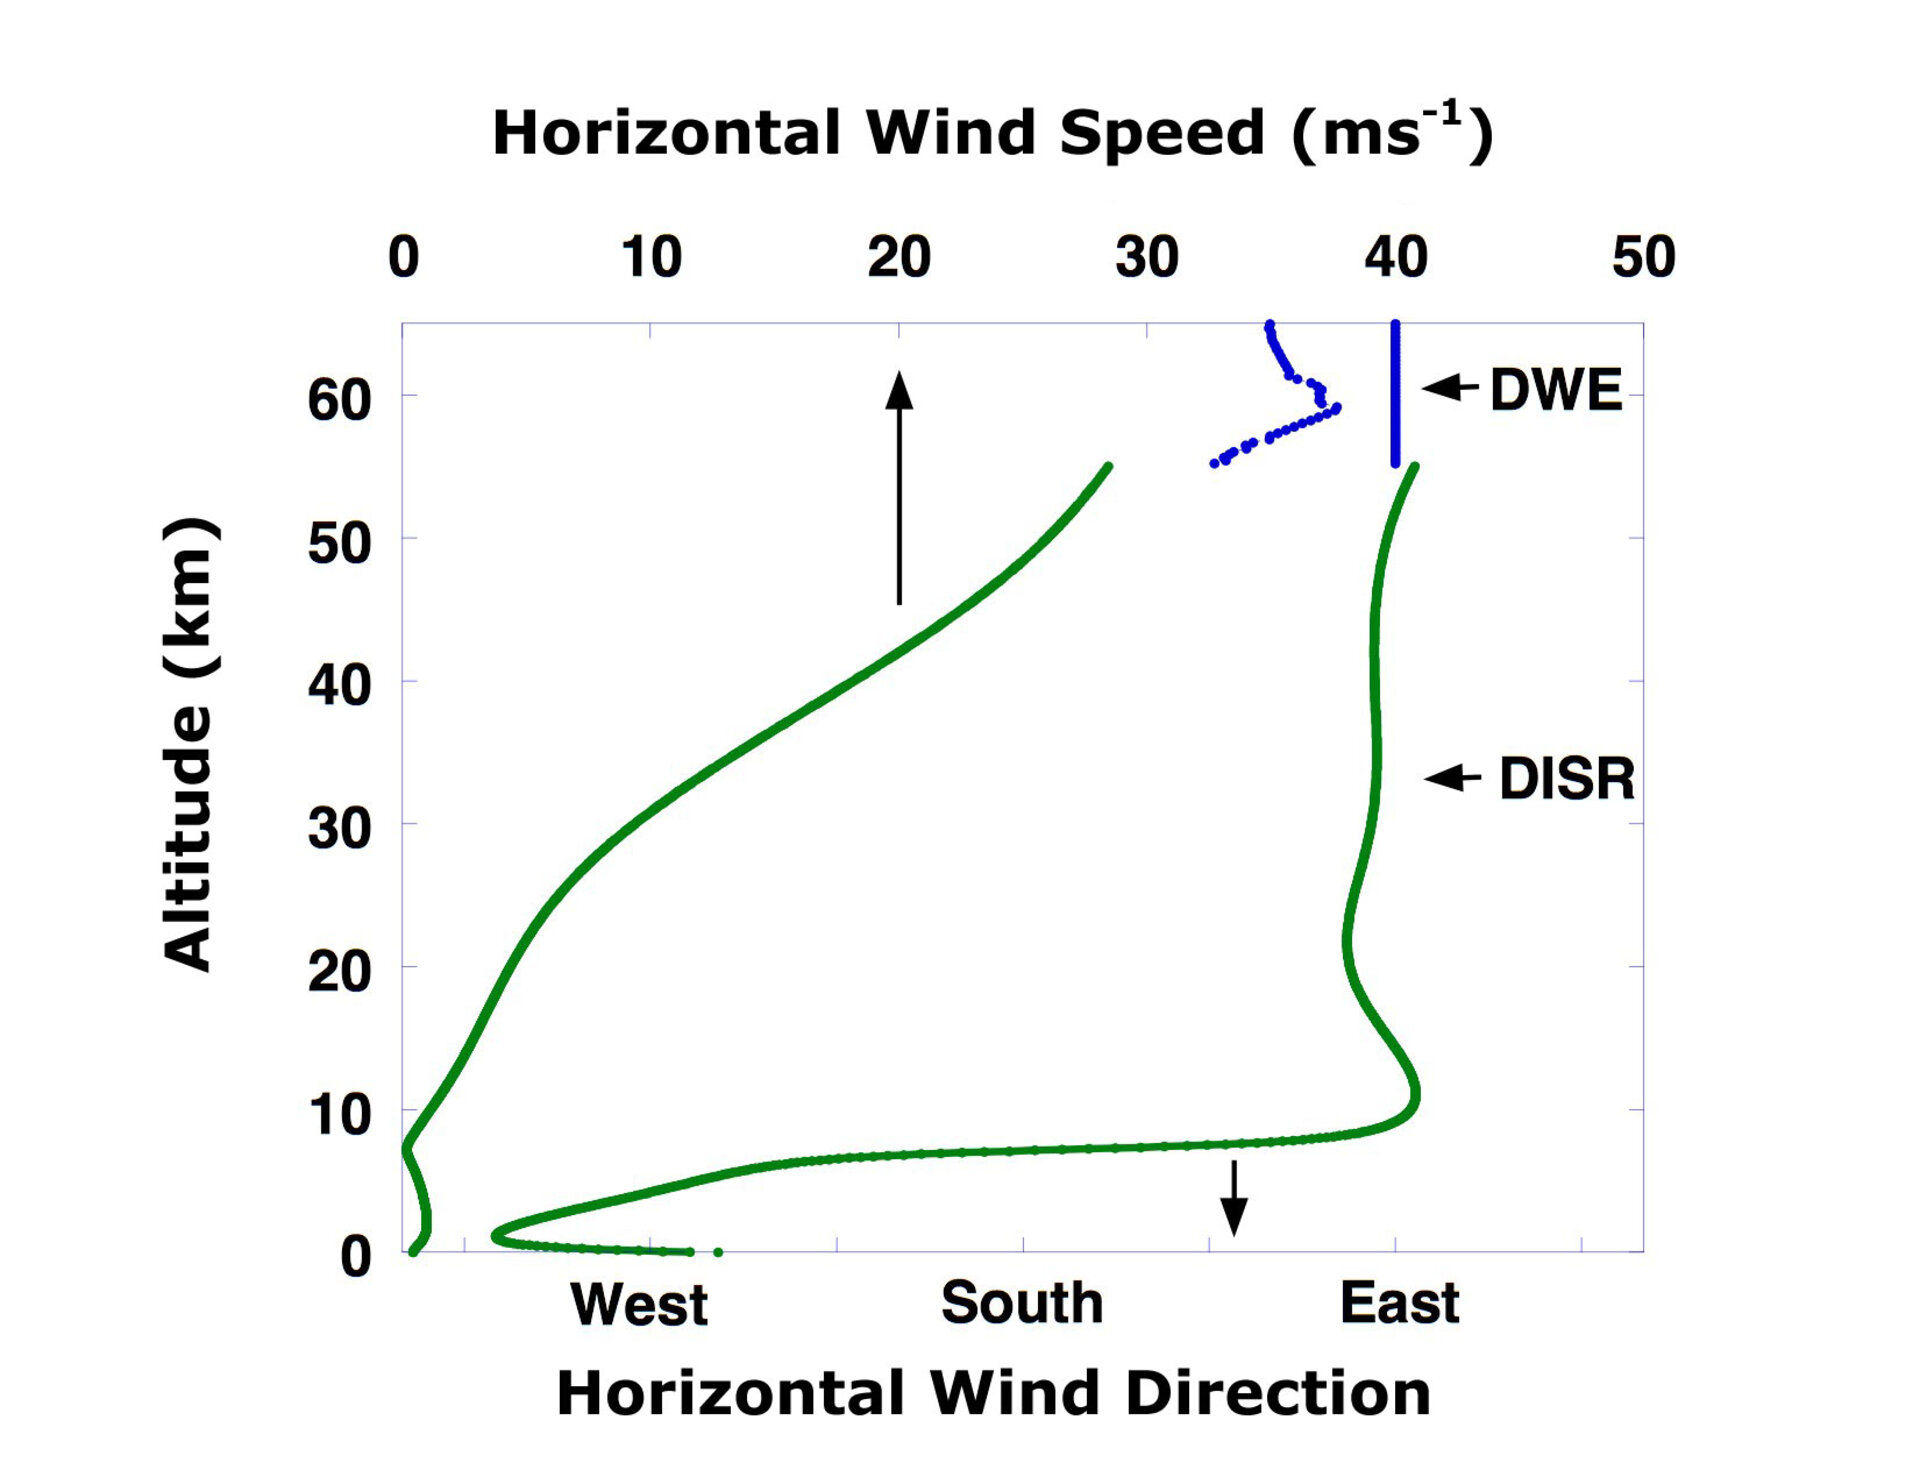 Wind speed and direction from DWE and DISR